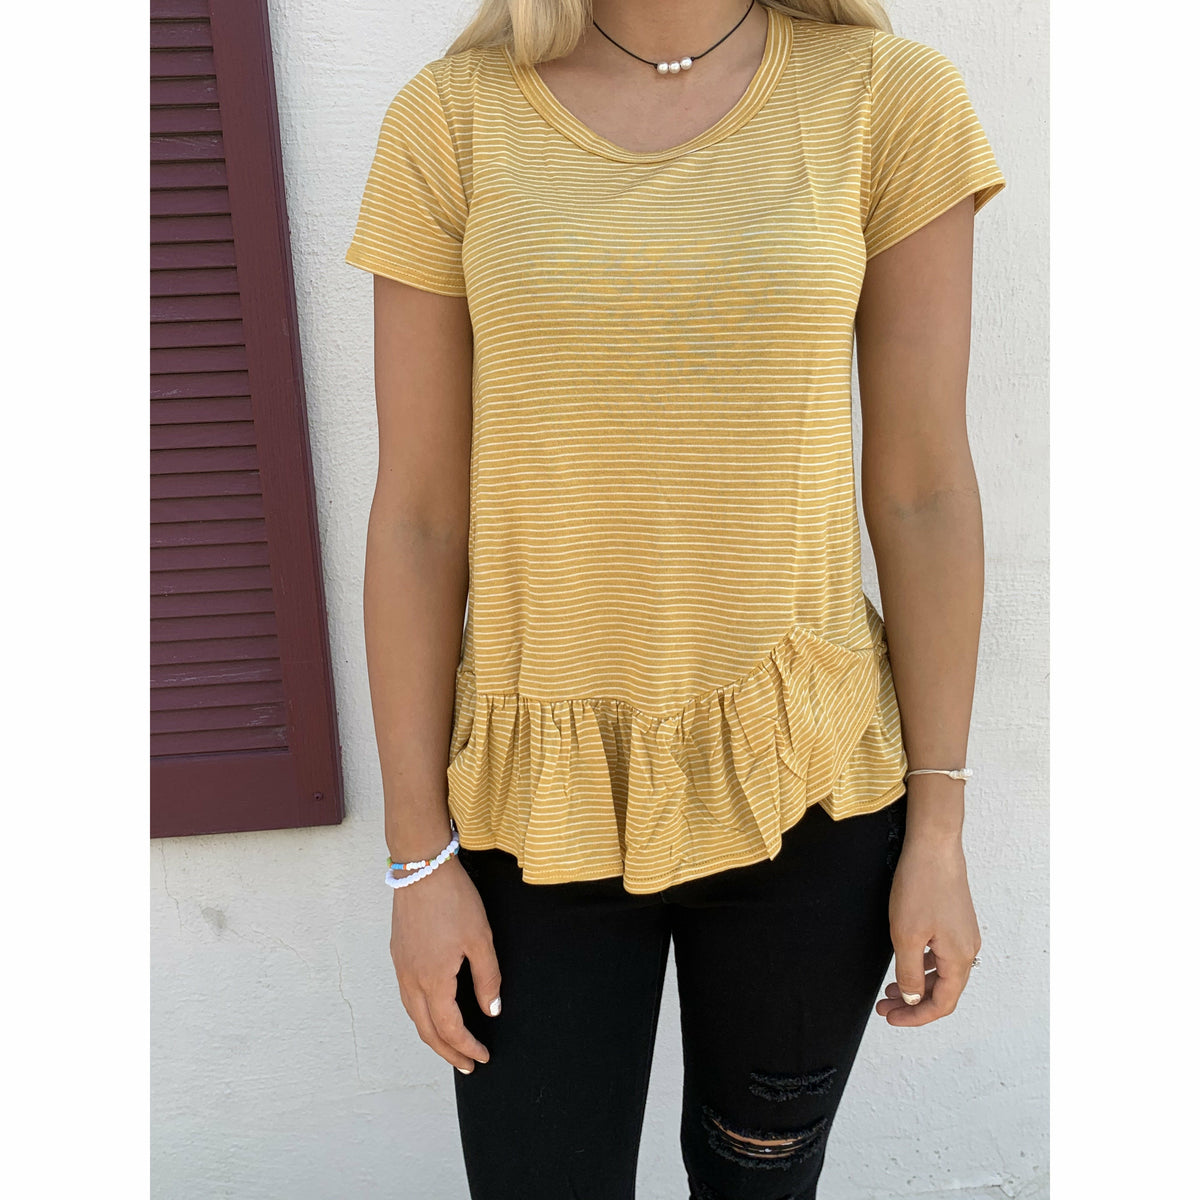 Mustard Flowy Love Top